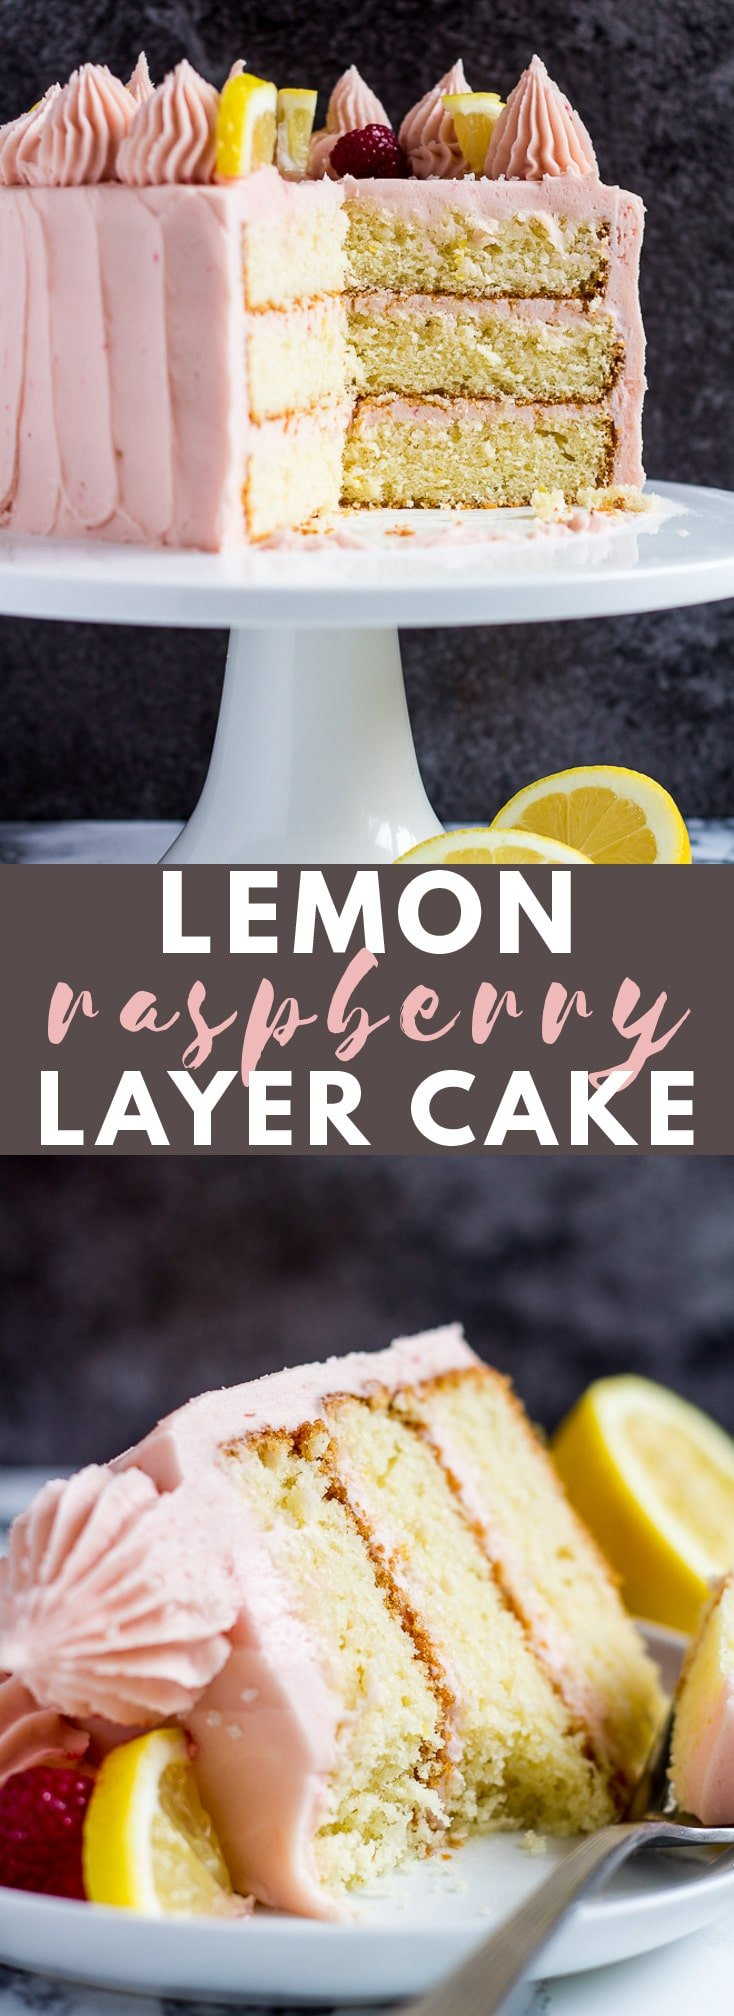 Lemon Raspberry Layer Cake - Deliciously moist and fluffy lemon infused cake frosted with a creamy raspberry buttercream, and topped with fresh raspberries and lemon slices! #lemon #raspberry #cake #cakerecipes